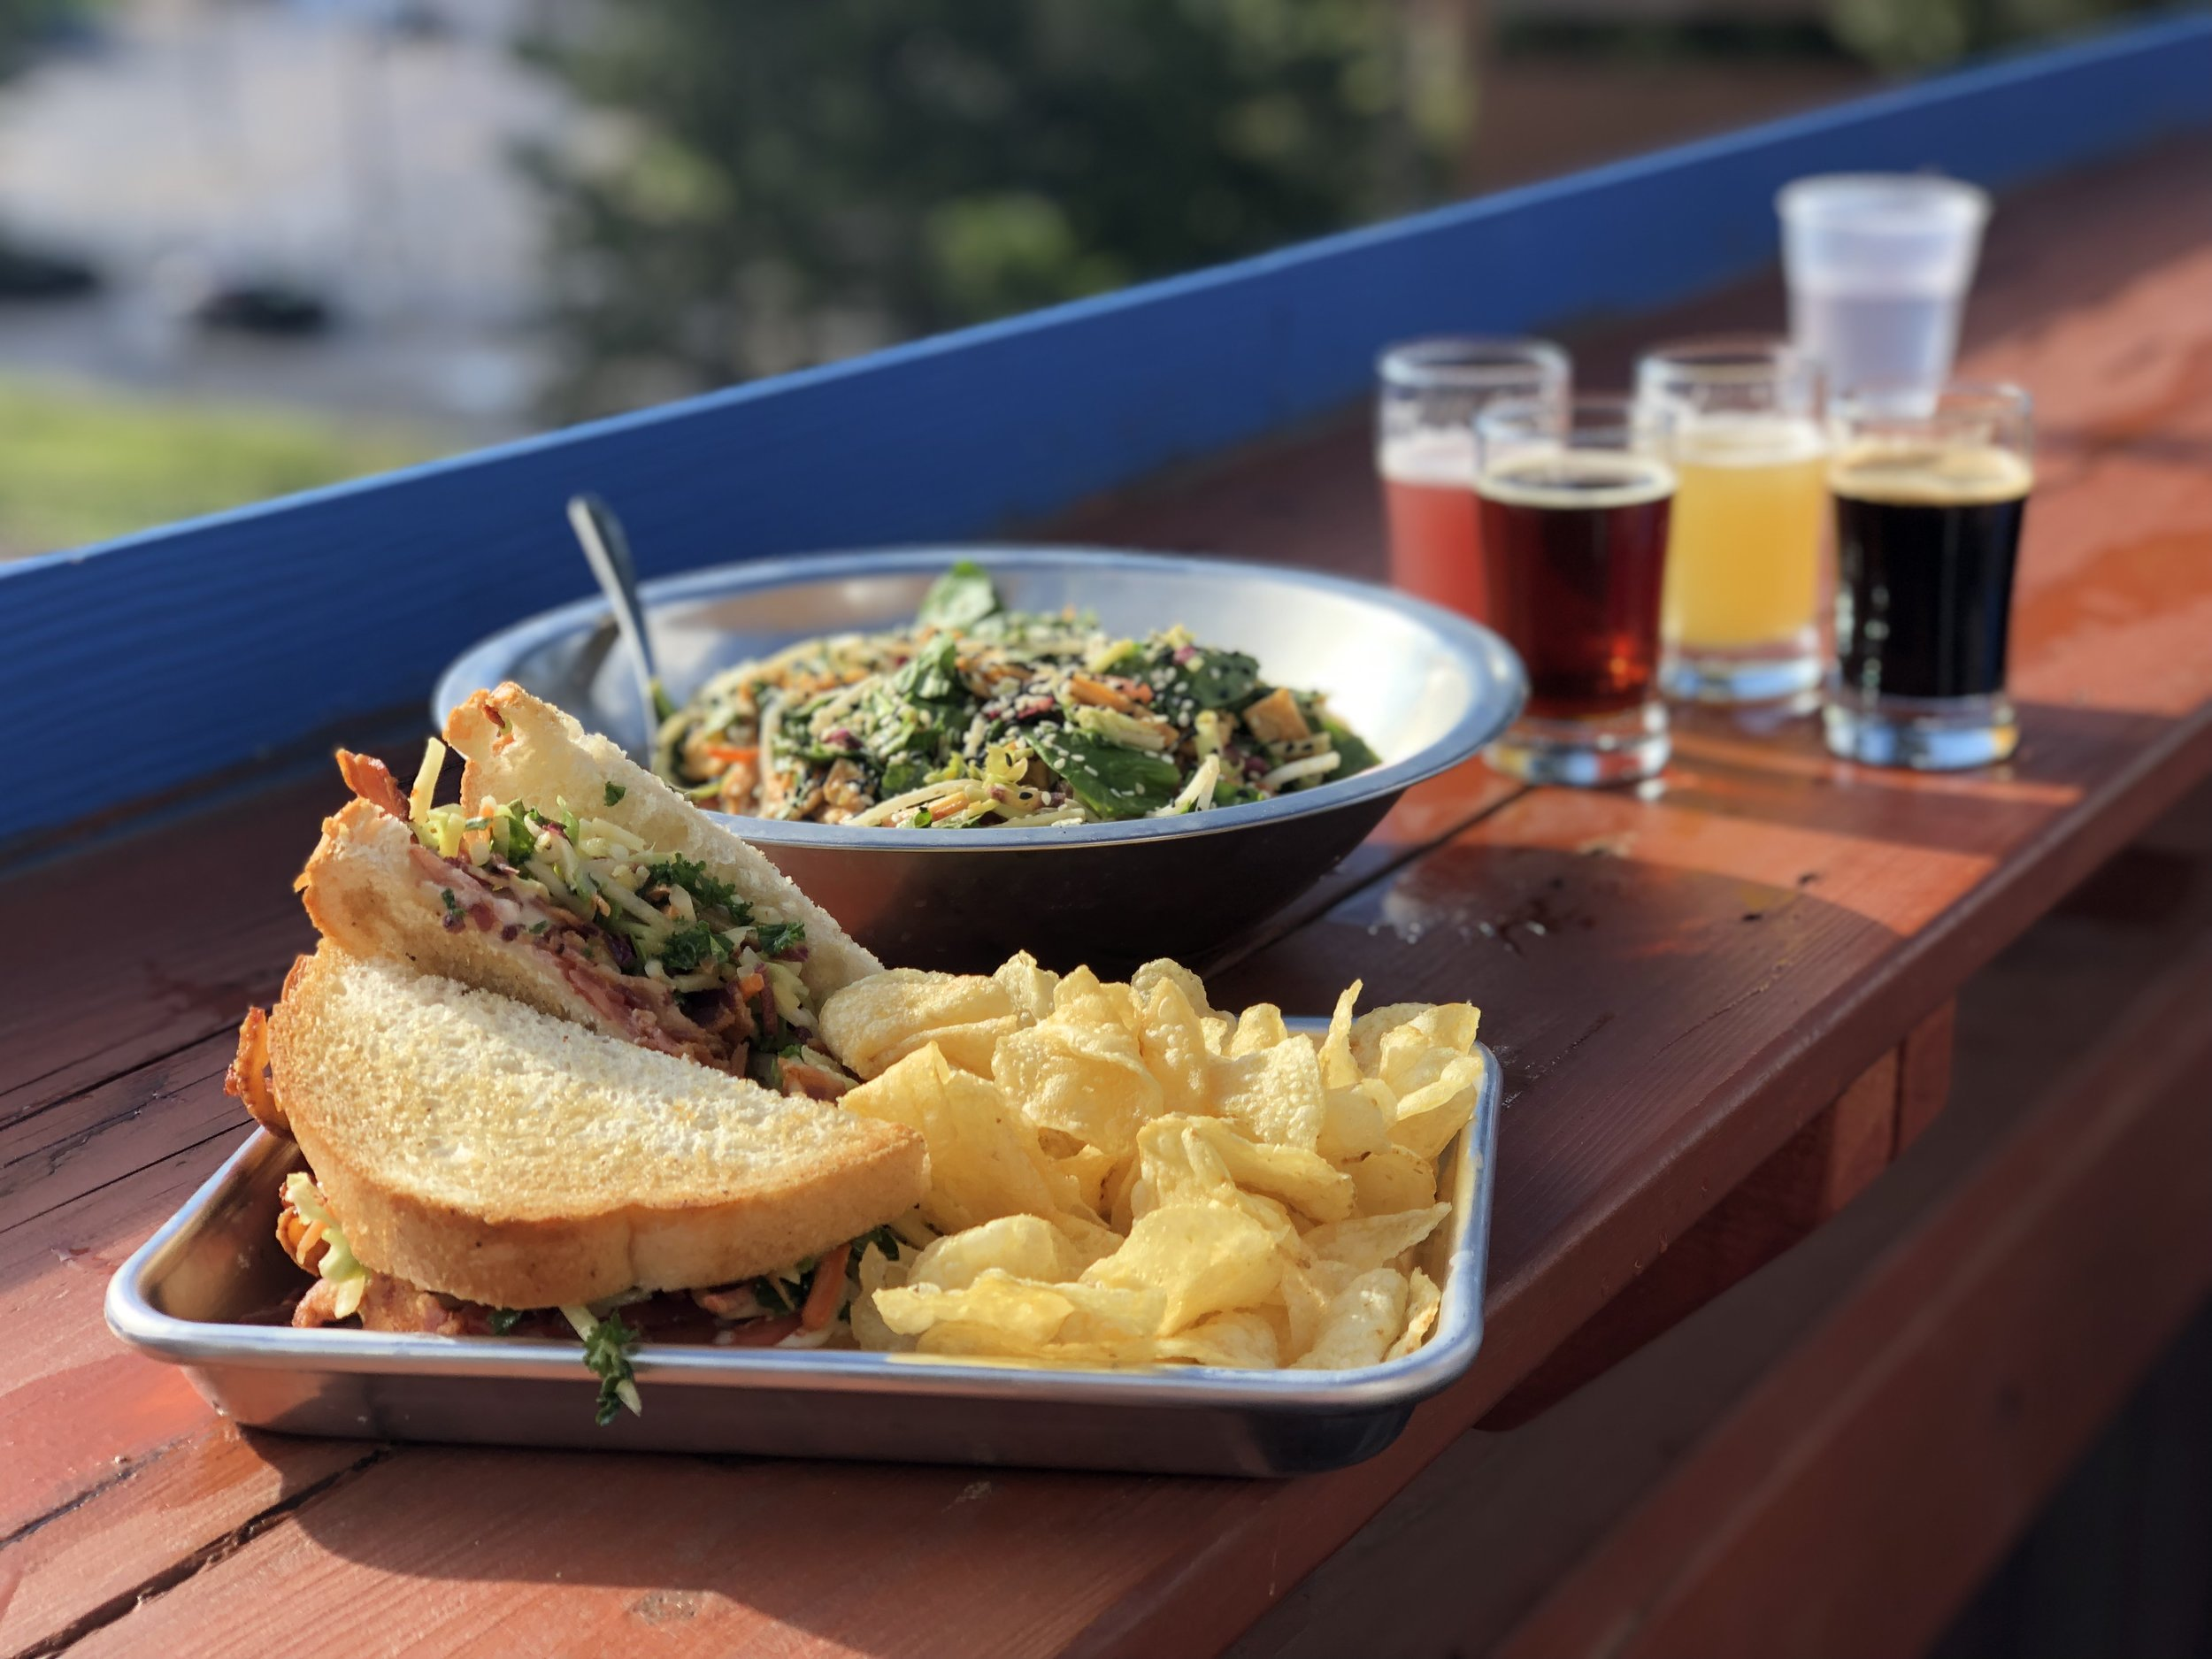 Evergreen Brewery's fabulous BLT with summer slaw and Thai crunch salad. ©Suzanne Brown 2019